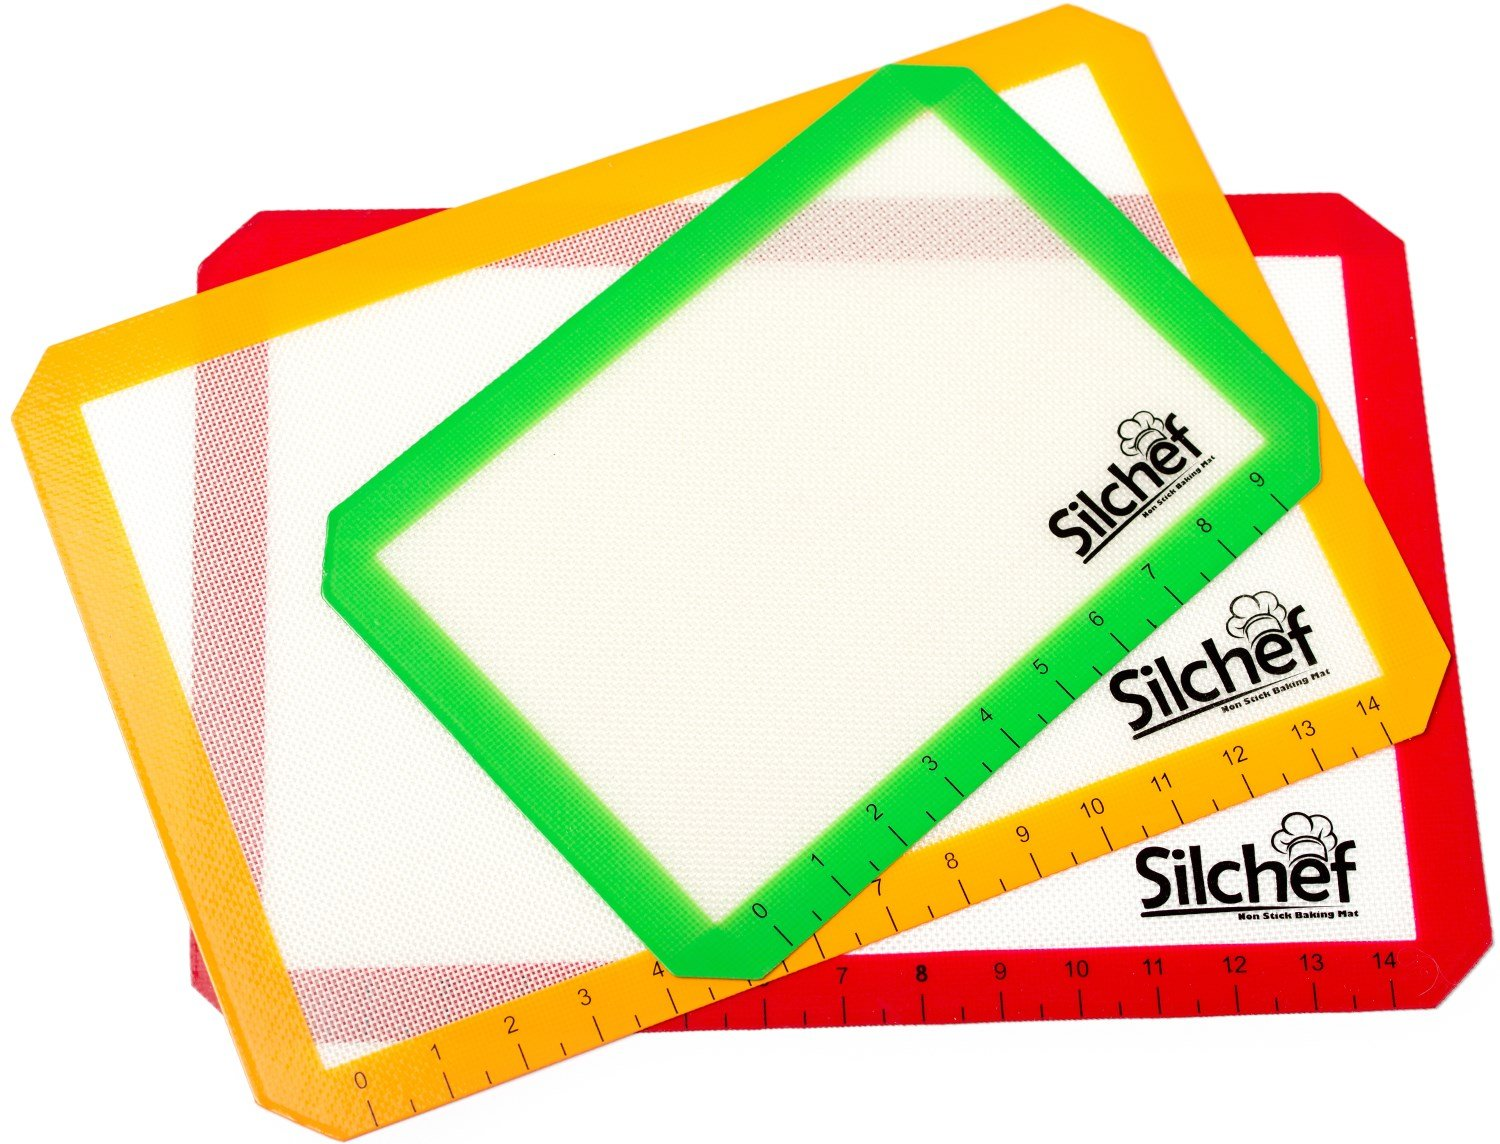 Silicone 3 Piece Non Stick Baking Mats with Measurements 2 Half Sheet Liners and 1 Quarter Sheet Mat, Professional Quality, Non Toxic and FDA Approved, Red, Yellow and Green Silchef SILCHEFBM03